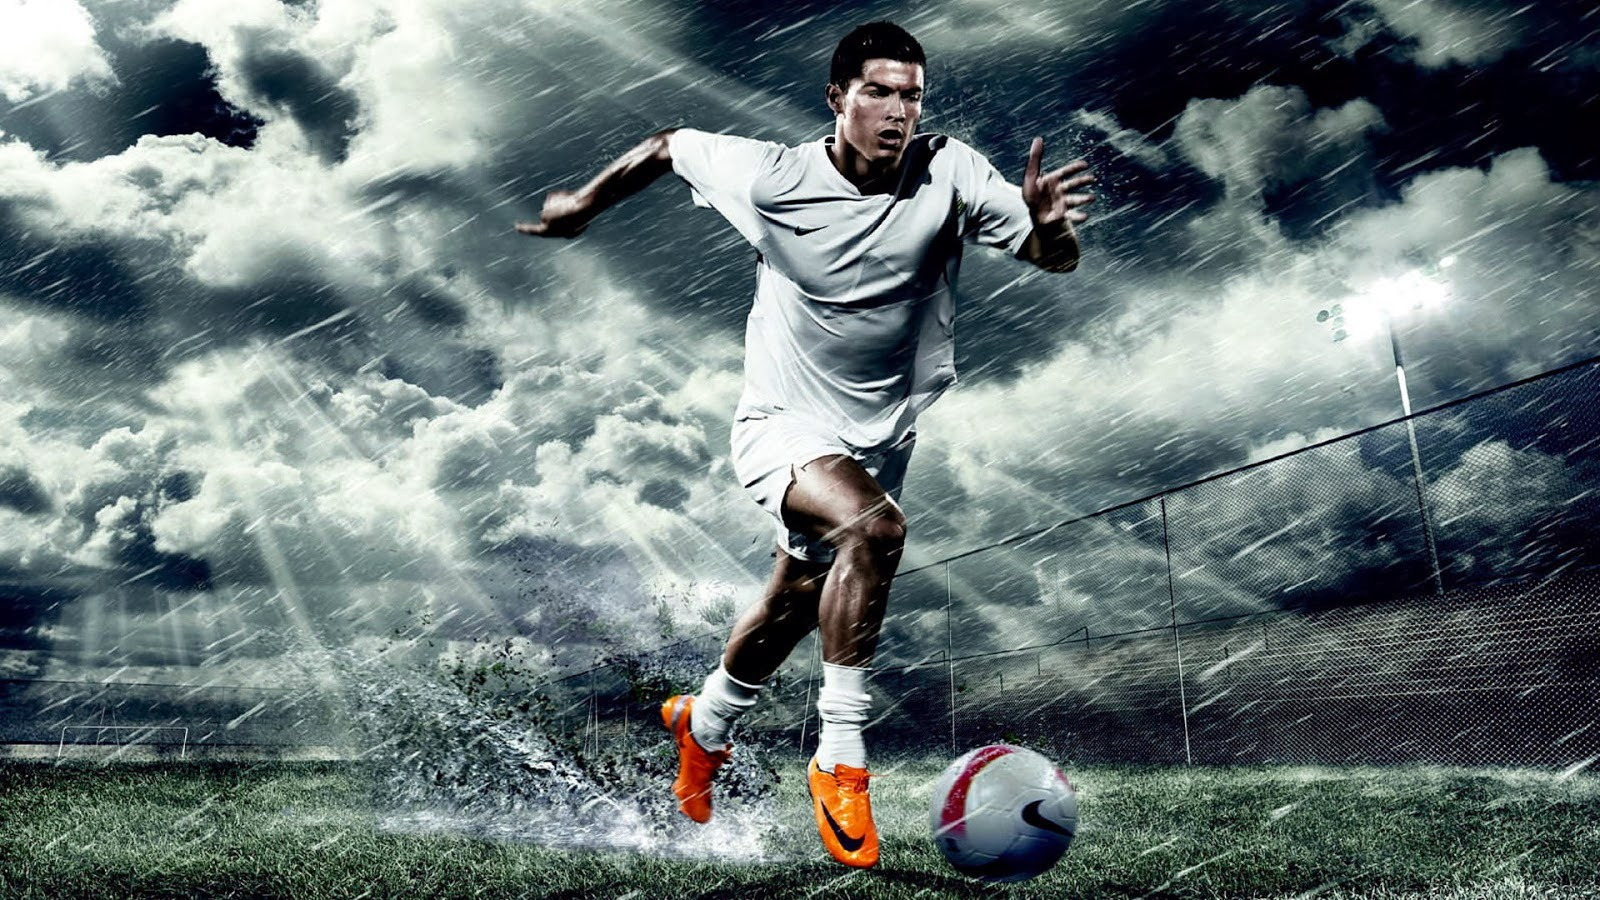 Cristiano Ronaldo HD Wallpaper,Images,Pics - HD Wallpapers Blog